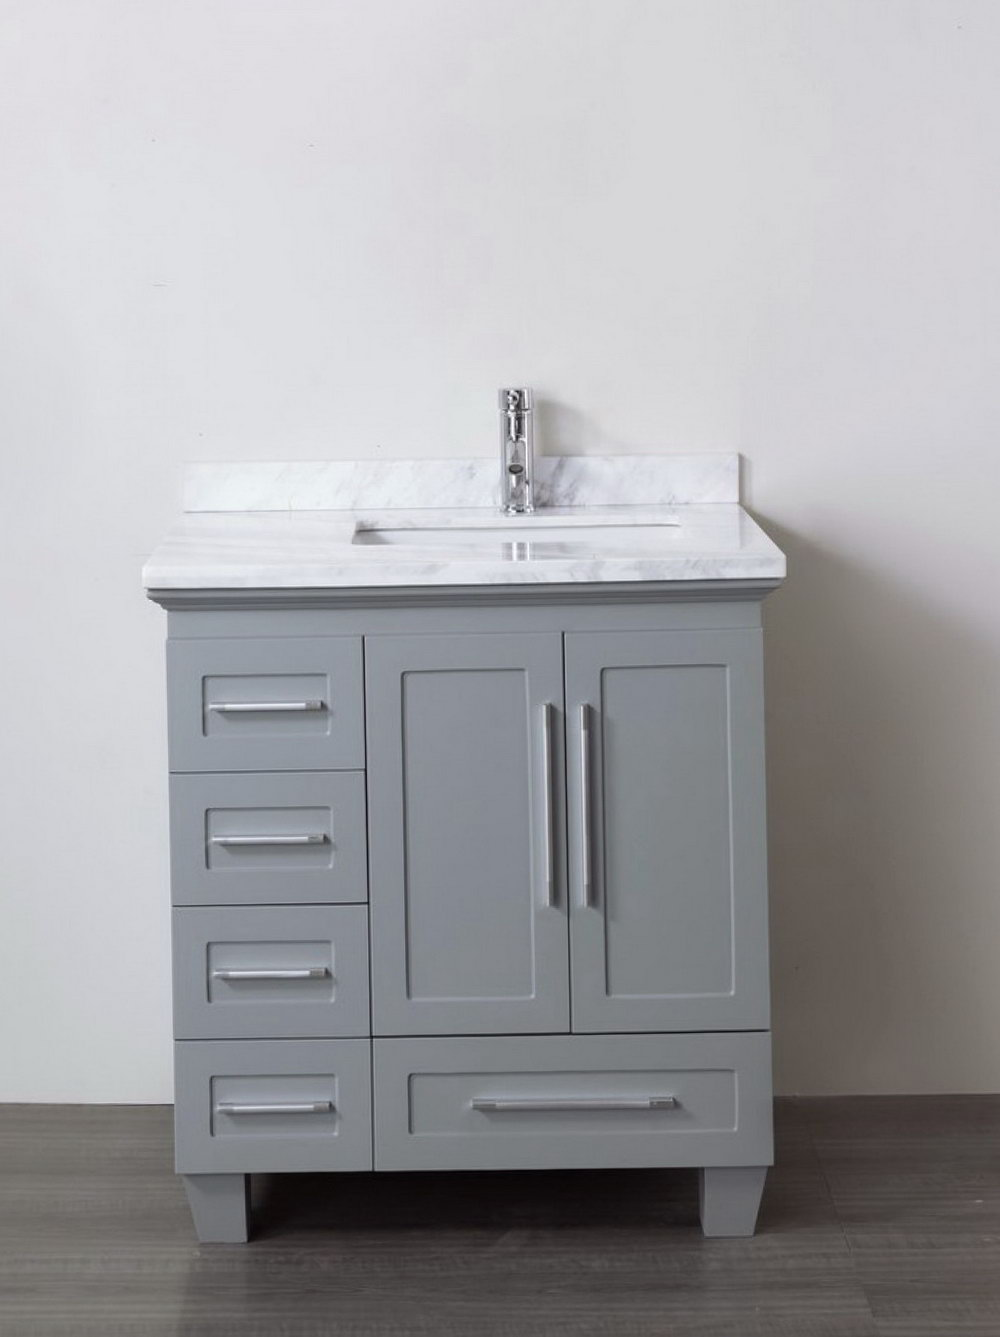 Carrera Marble Vanity Top 37